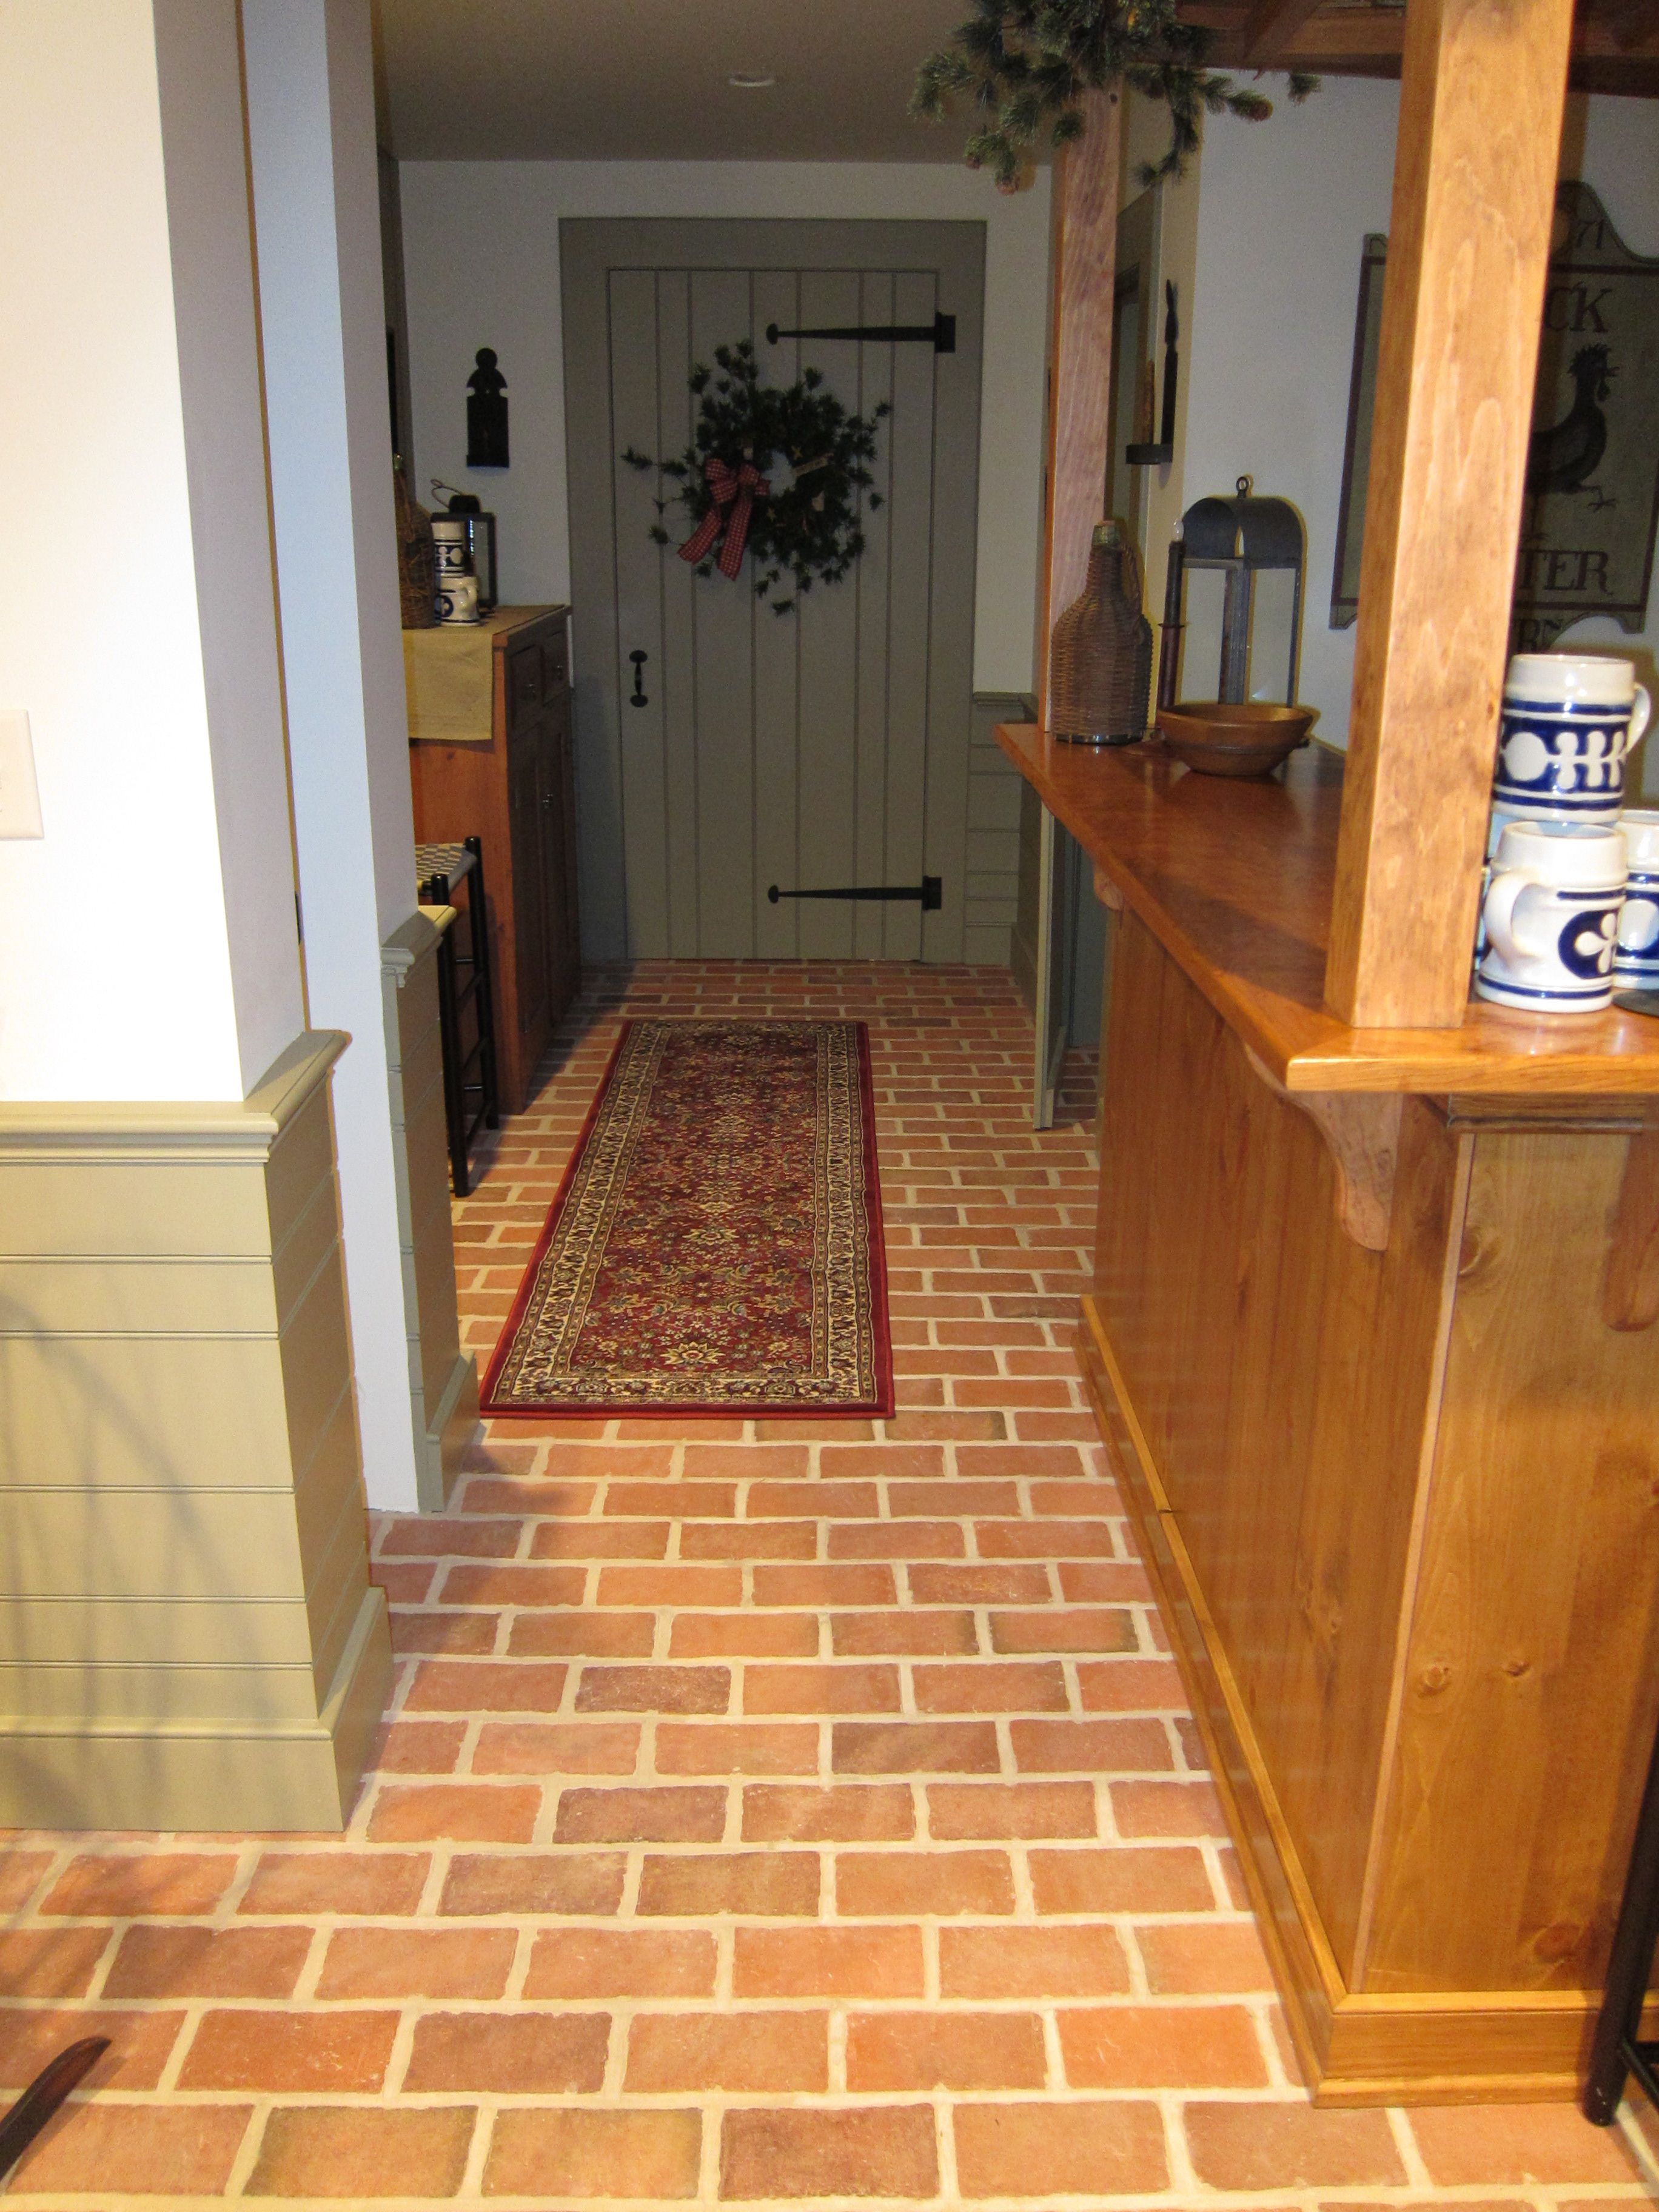 Wrights ferry brick tile kitchen floor marietta color mix wrights ferry brick tile kitchen floor marietta color dailygadgetfo Images